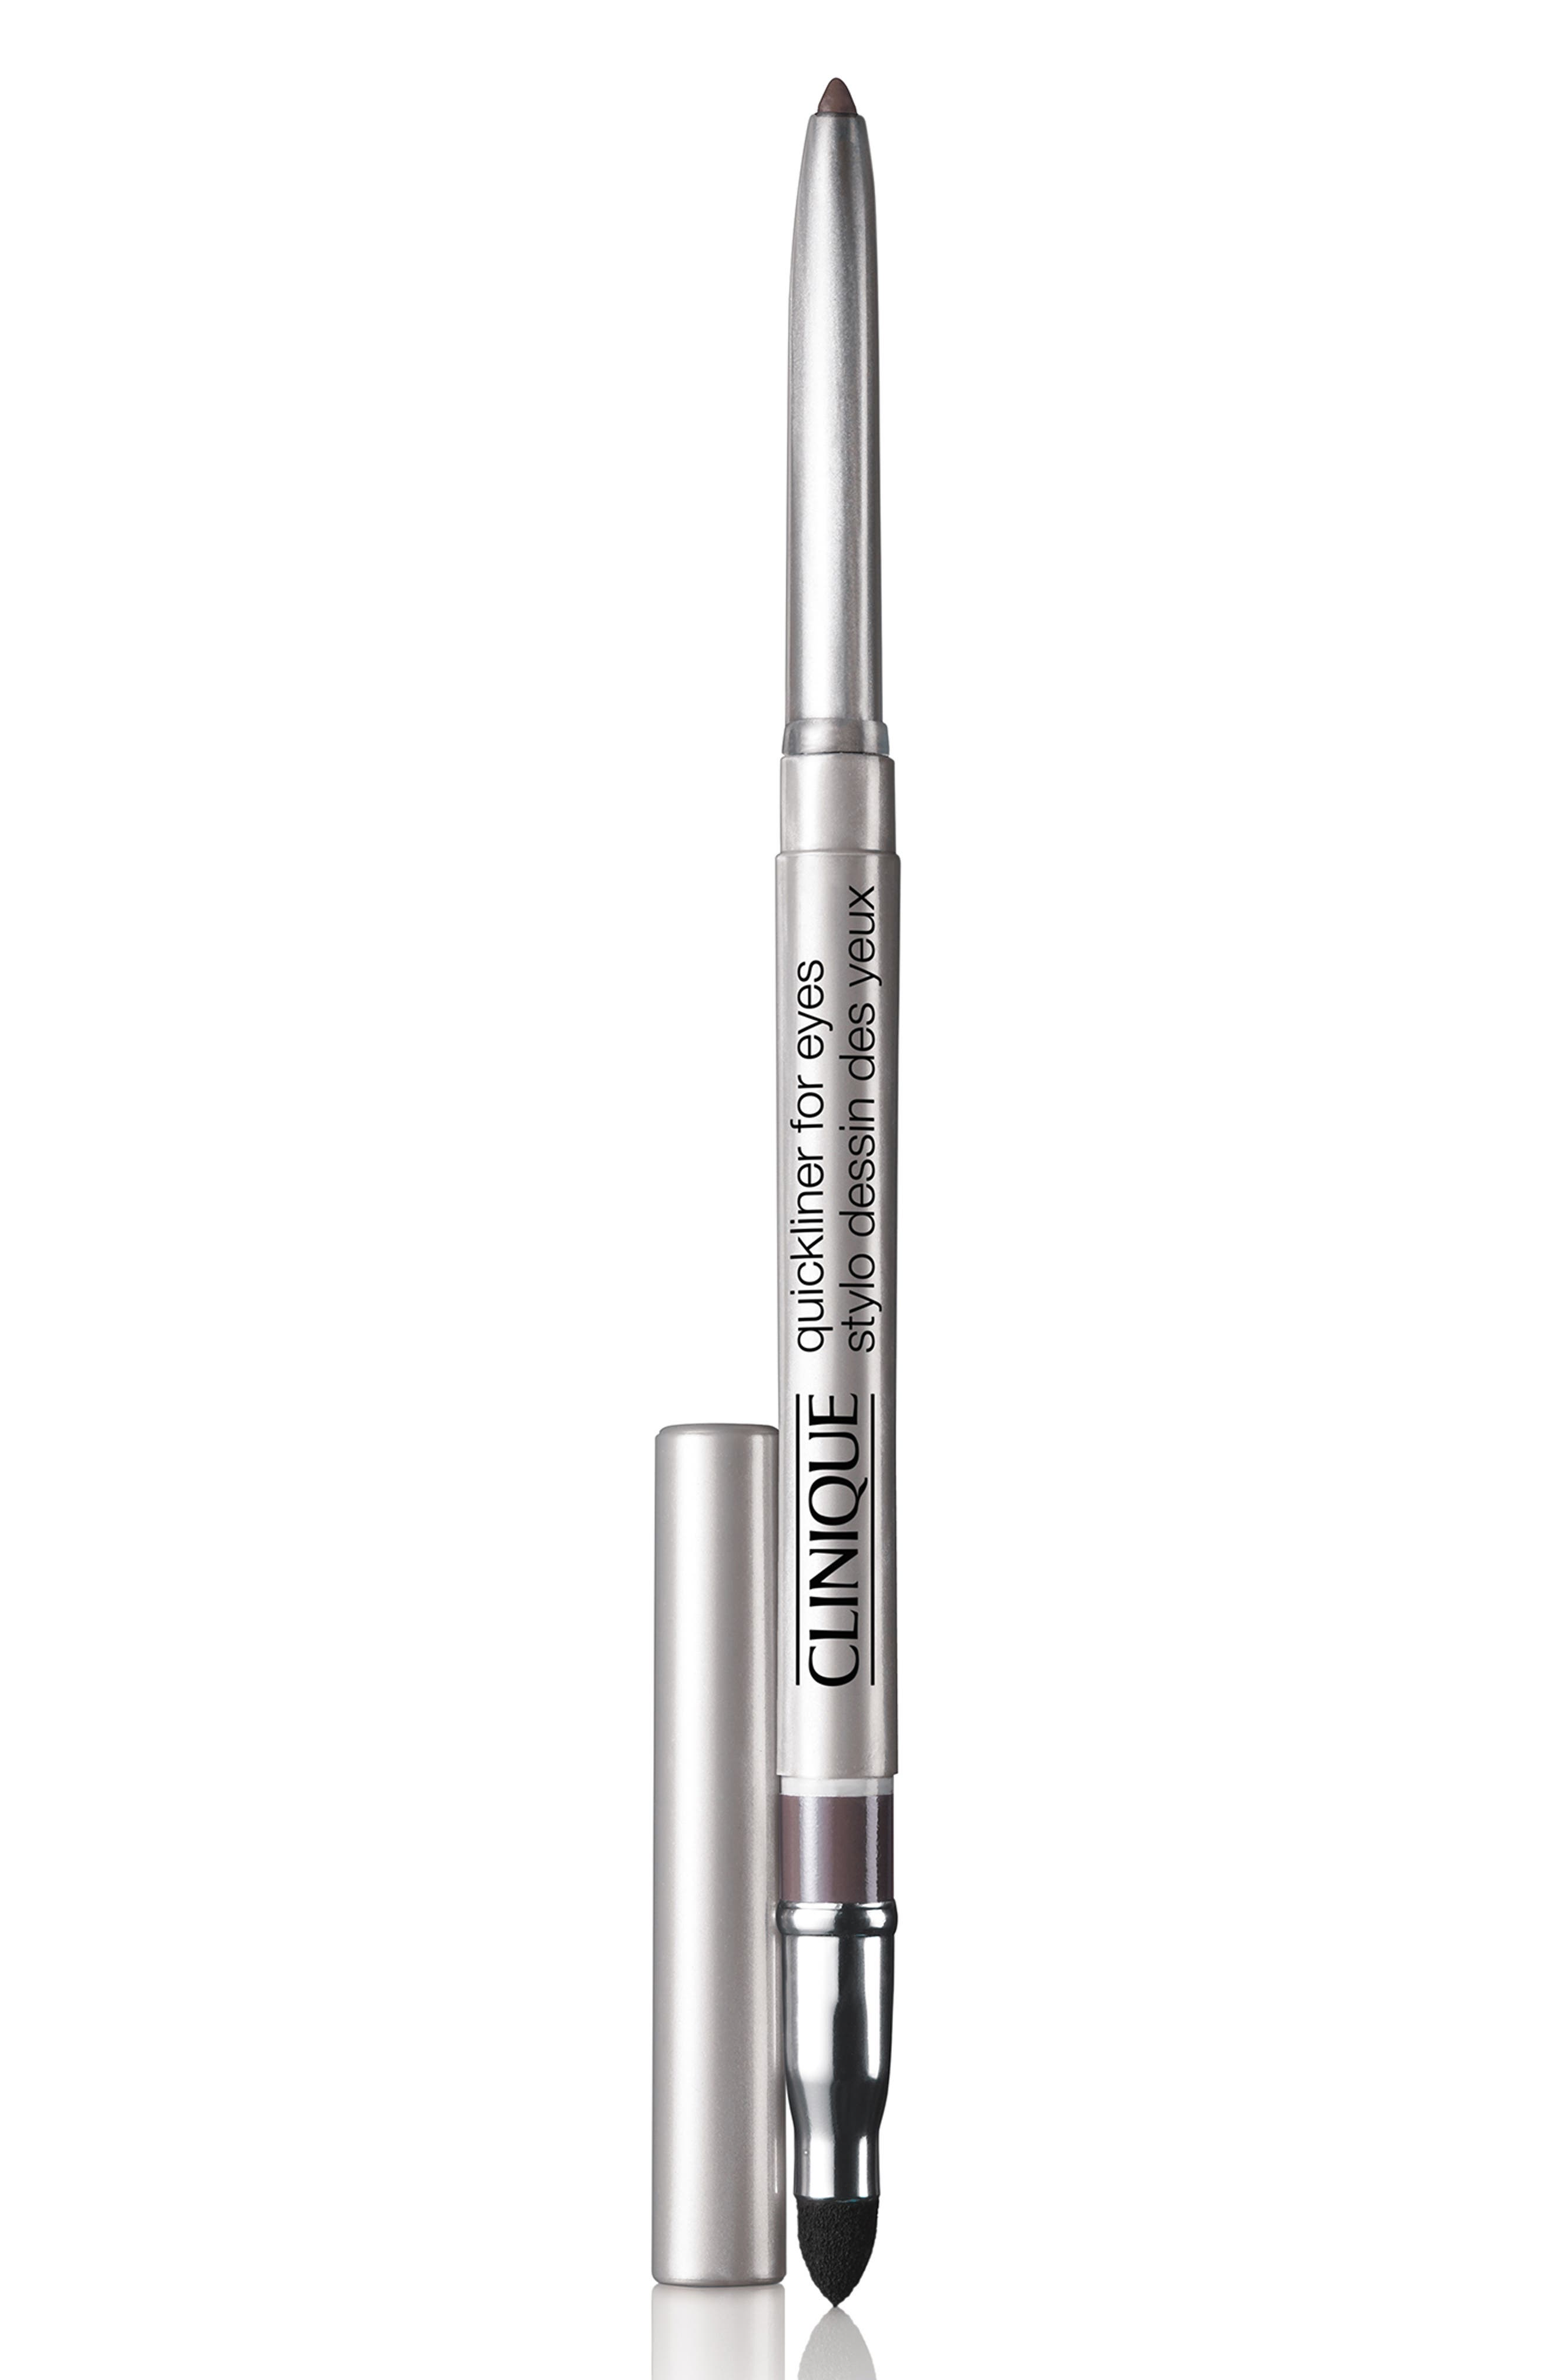 Clinique Quickliner For Eyes Eyeliner Pencil - Smokey Brown